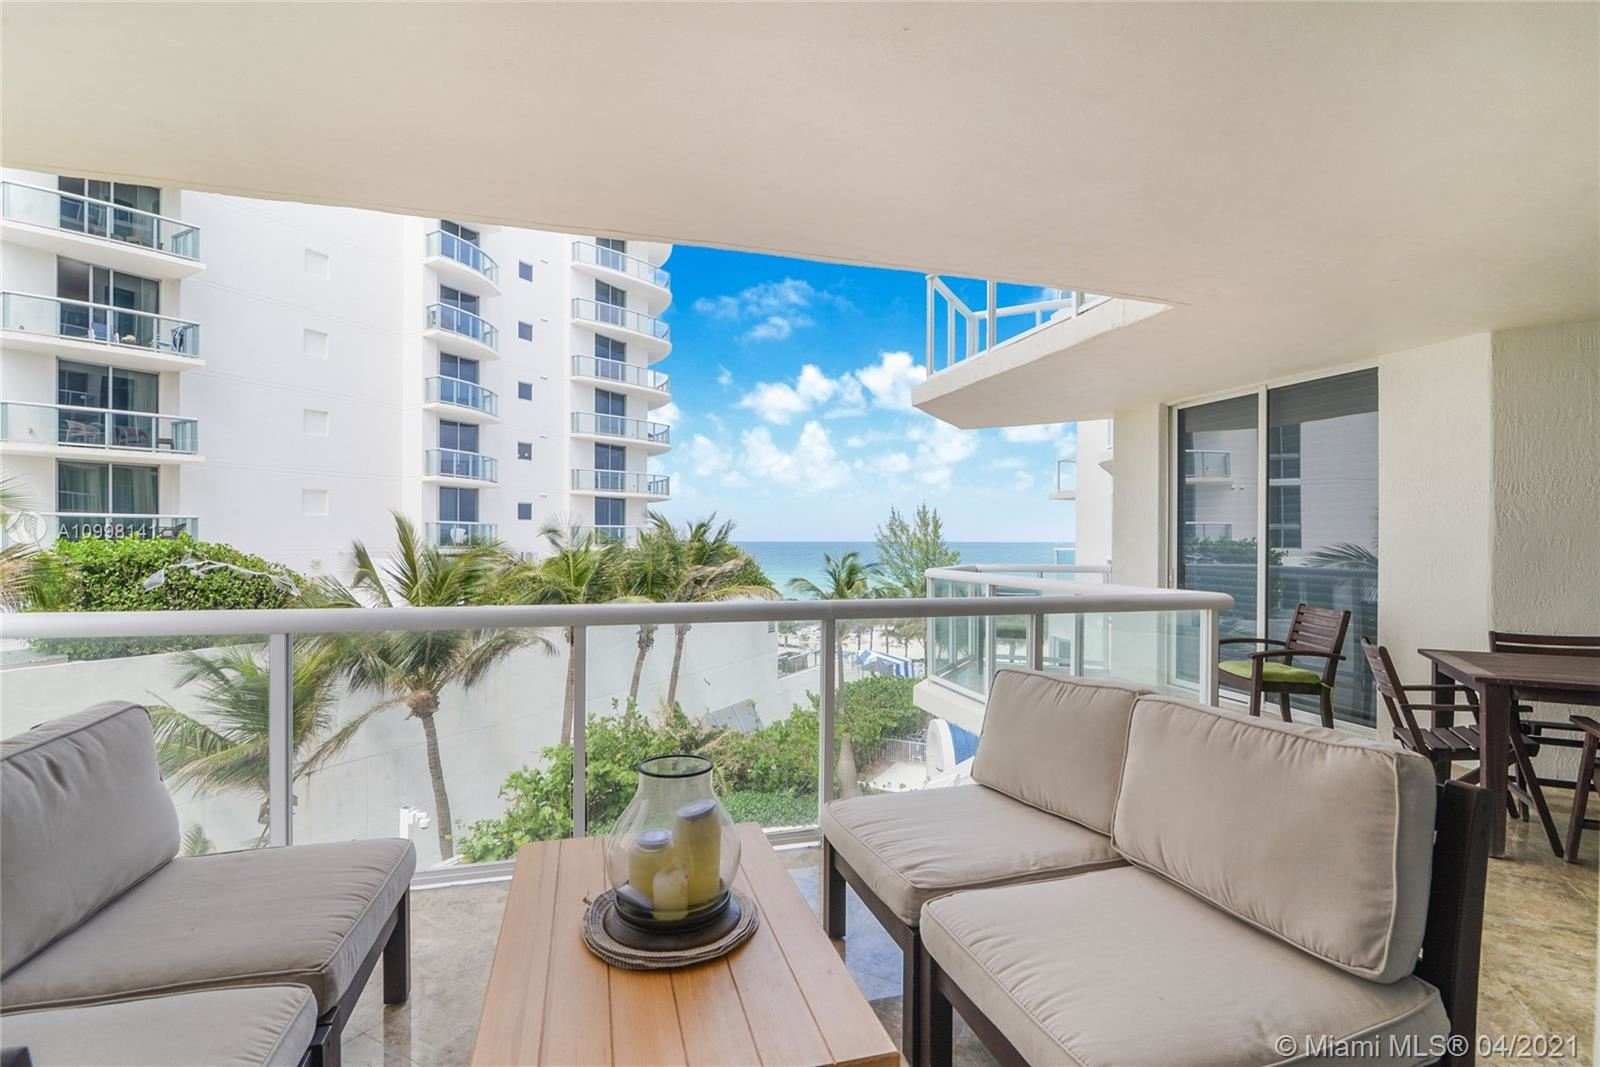 18671 Collins Ave #404, Sunny Isles, FL 33160 - #: A10998141